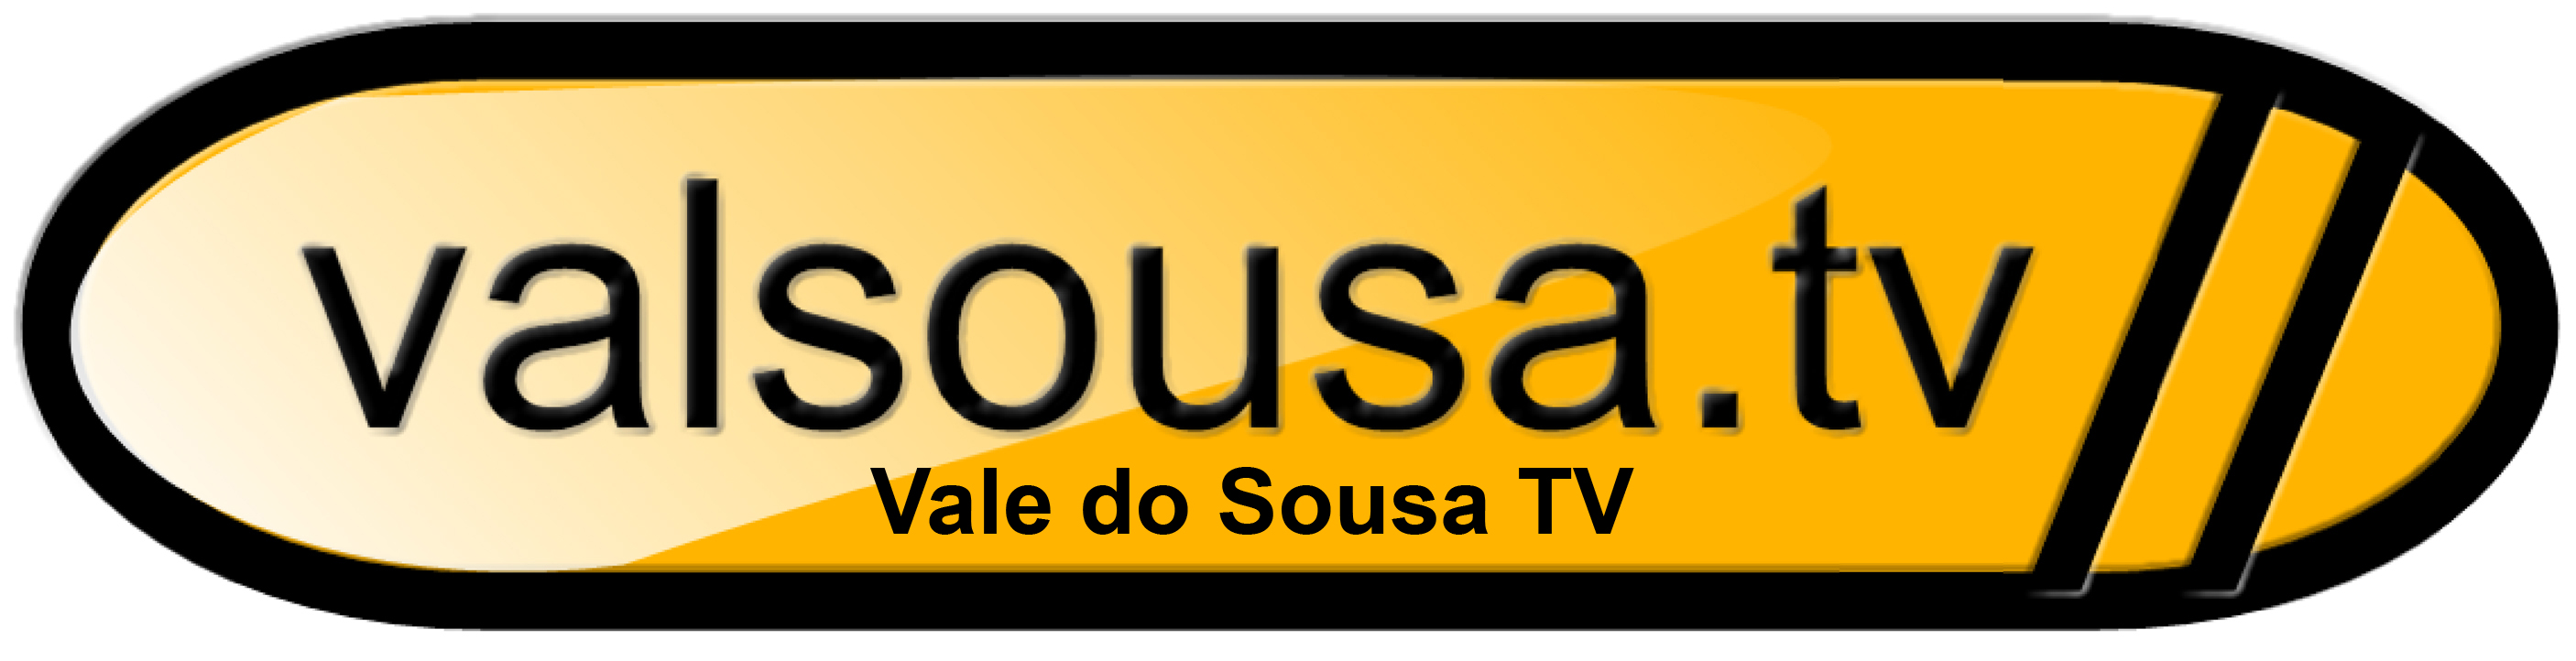 valsousa.tv – Vale do Sousa TV